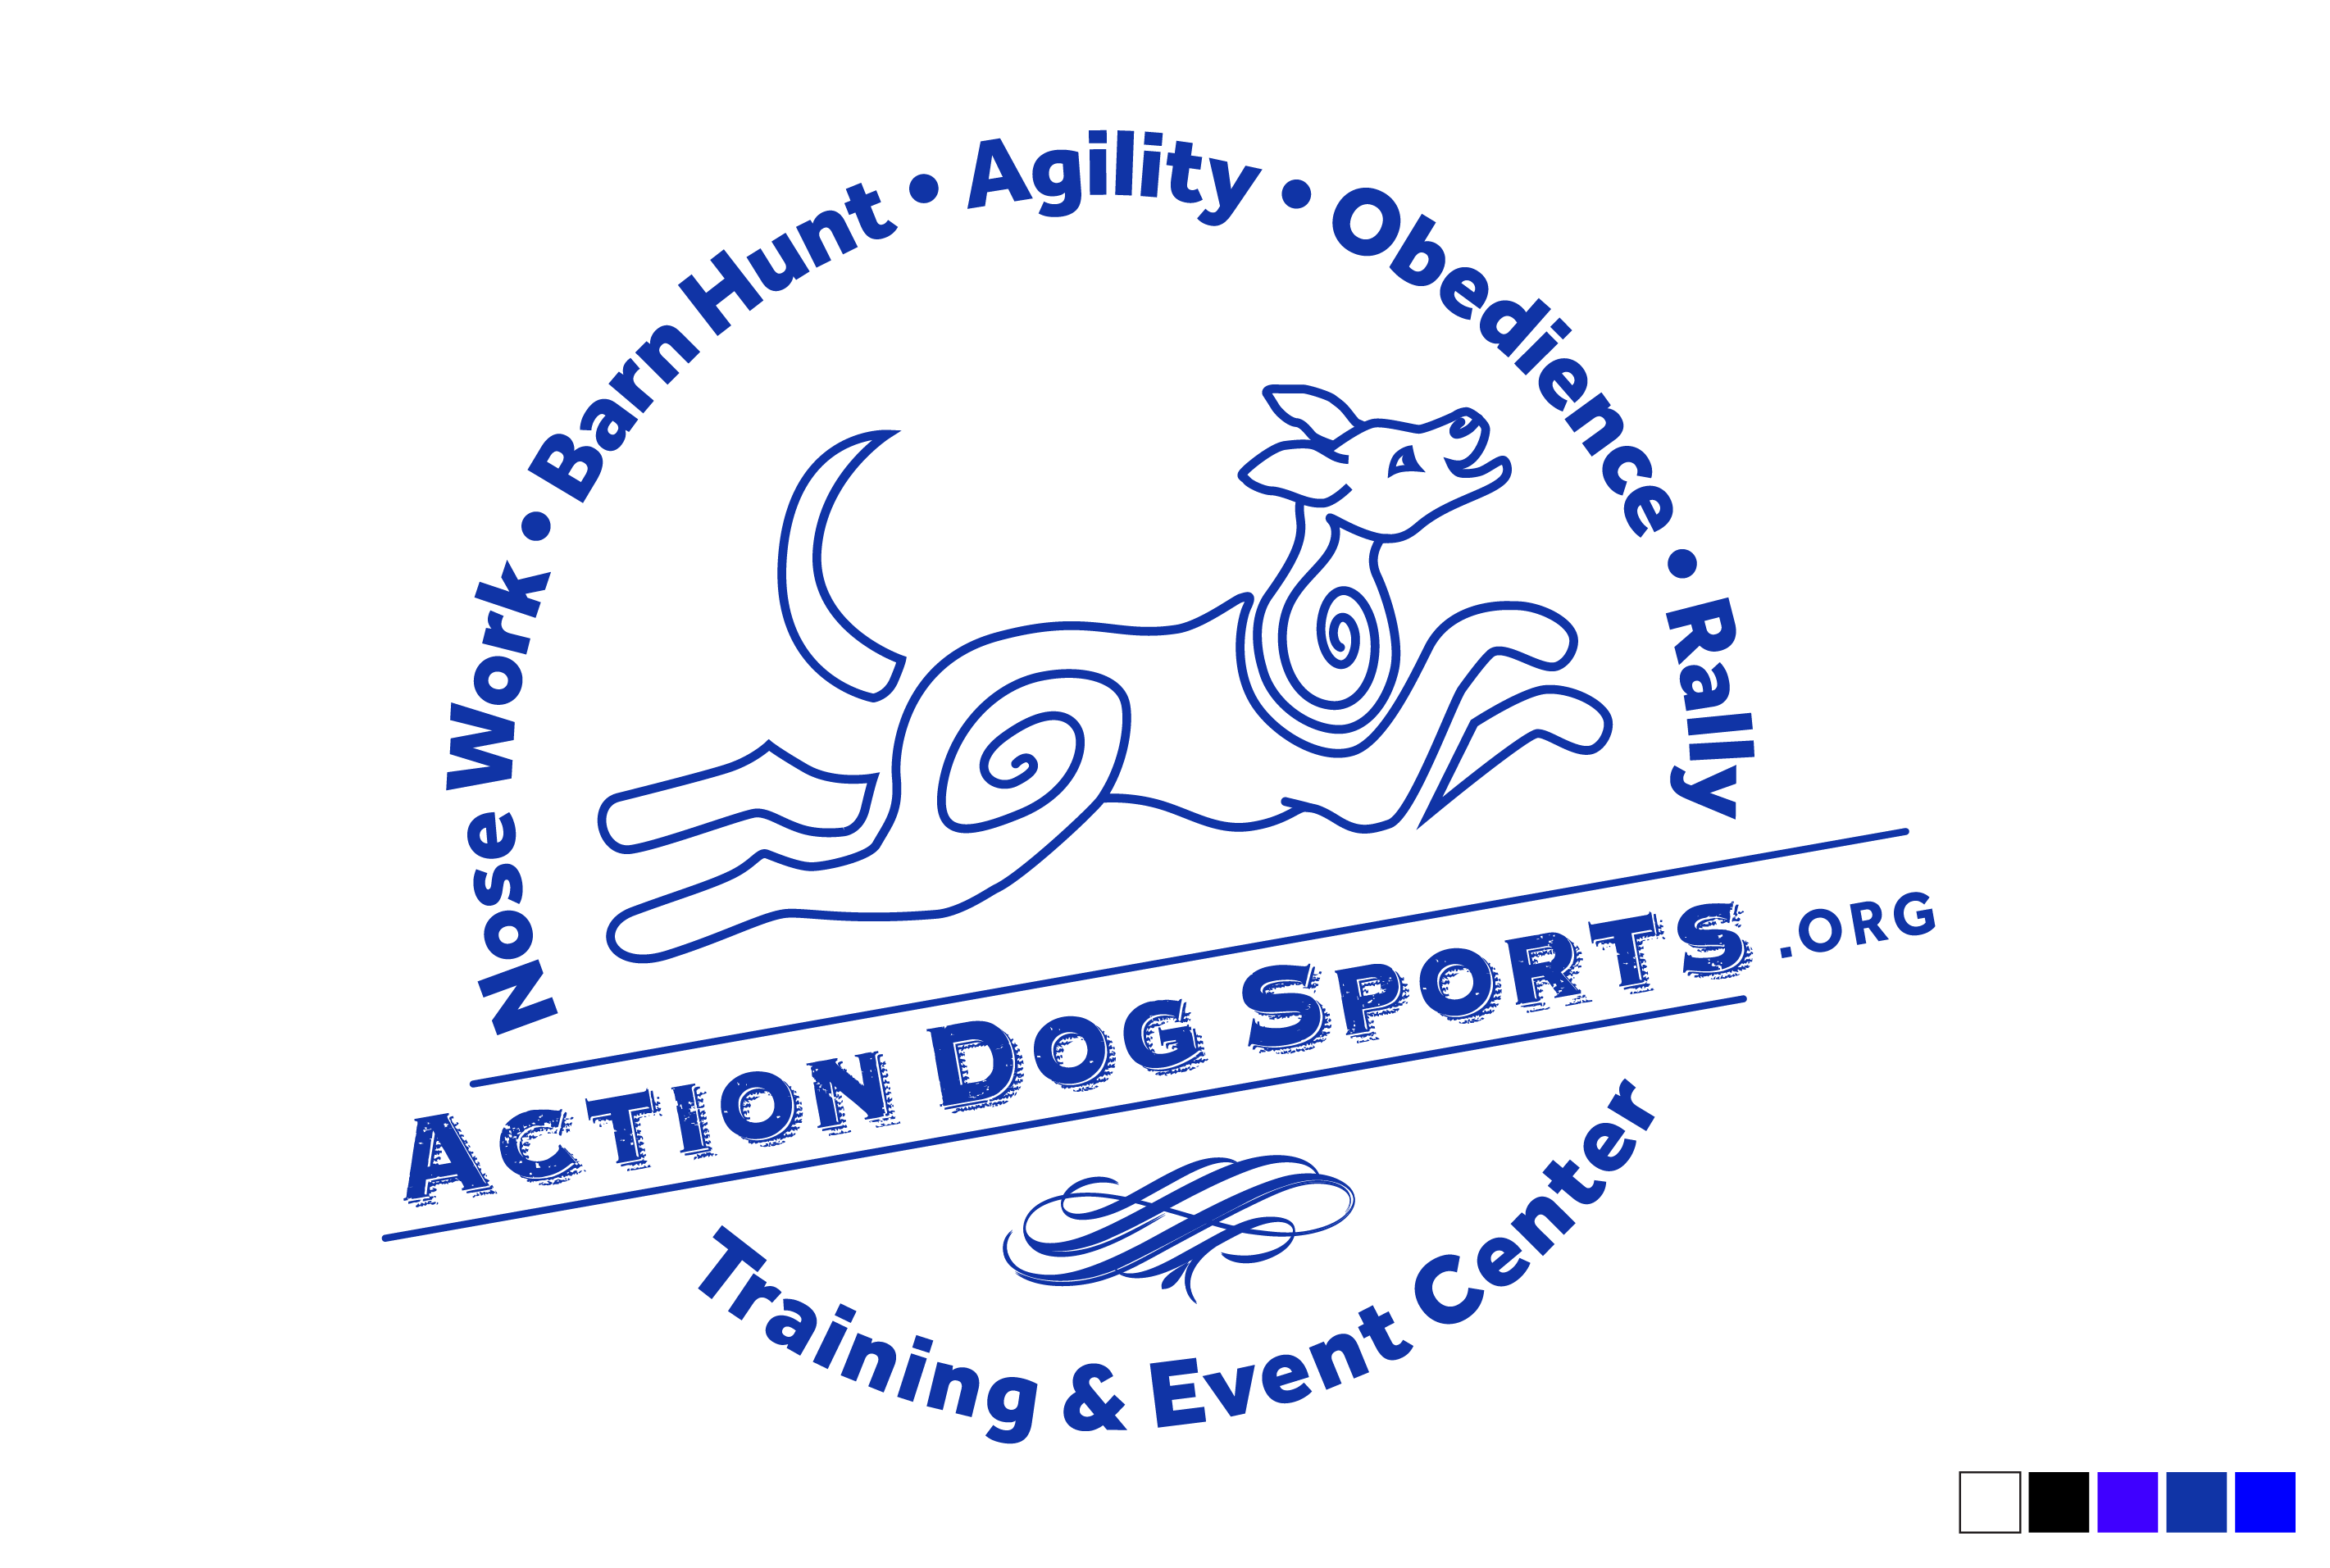 Action Dog Sports Wear